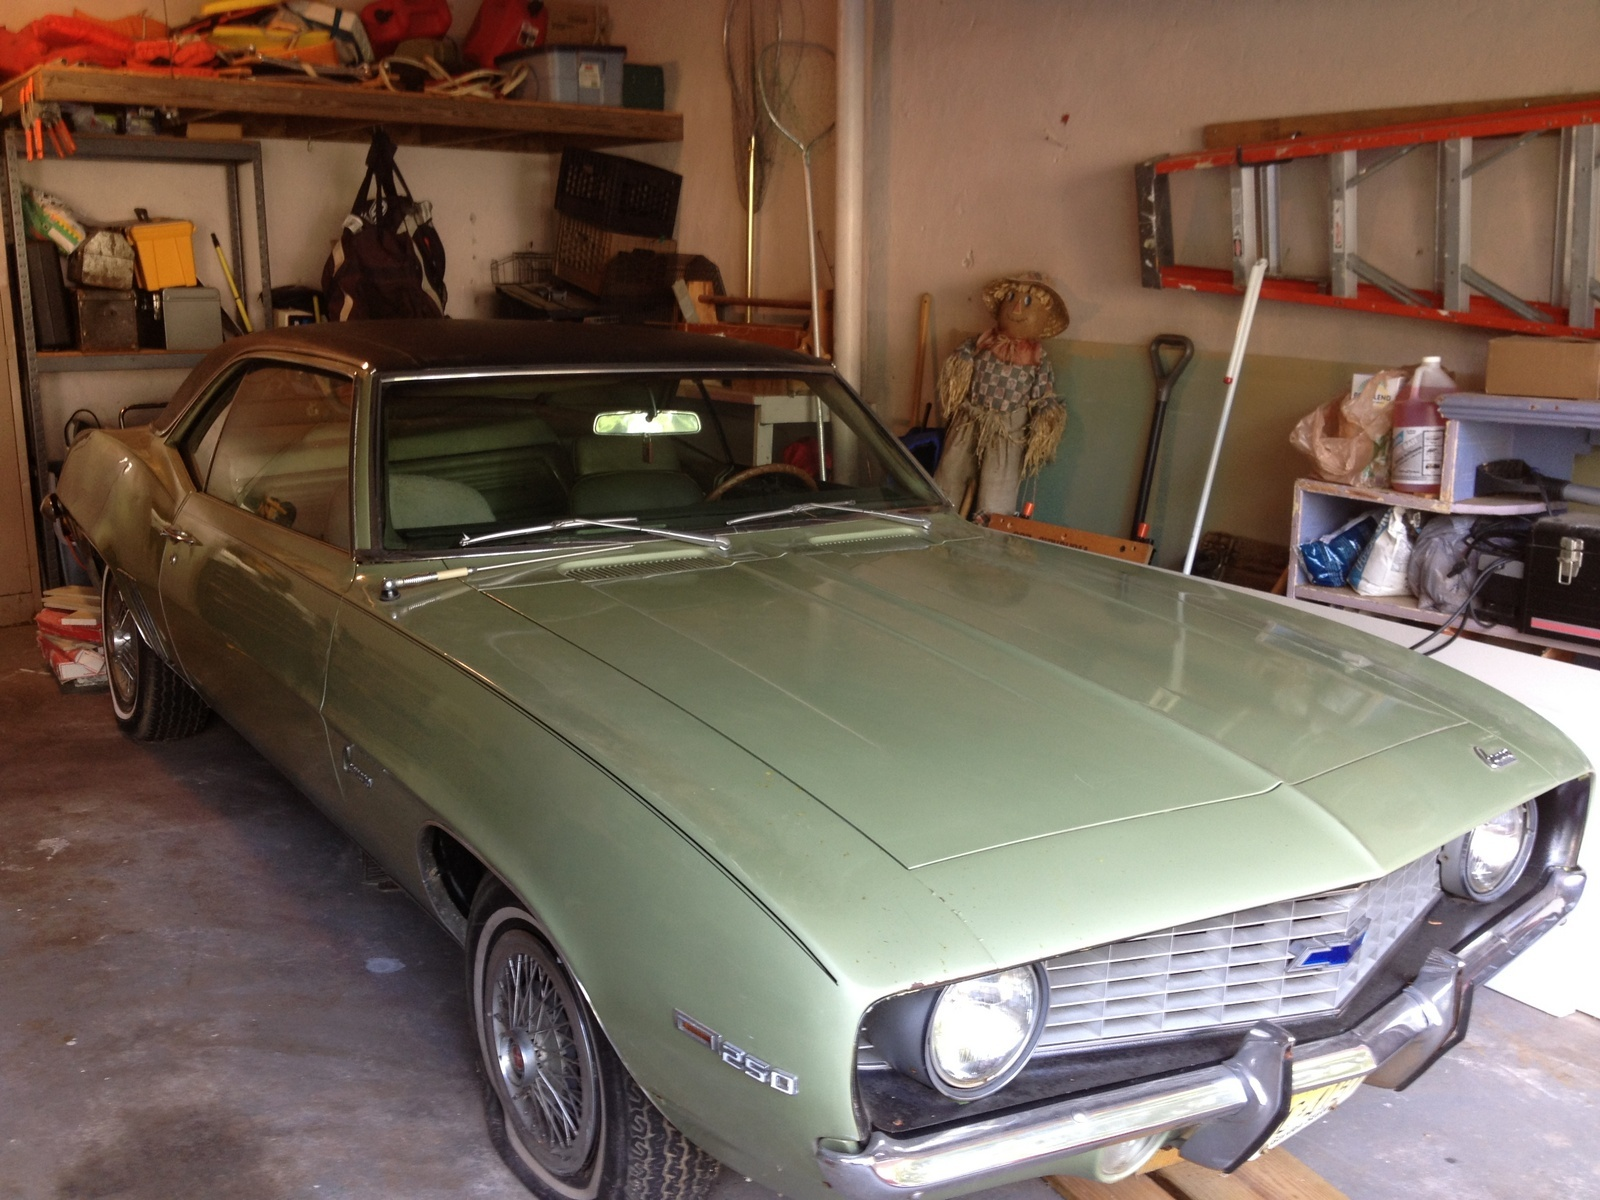 Shopping & Pricing Questions - Want to Sell 1969 Camaro 6